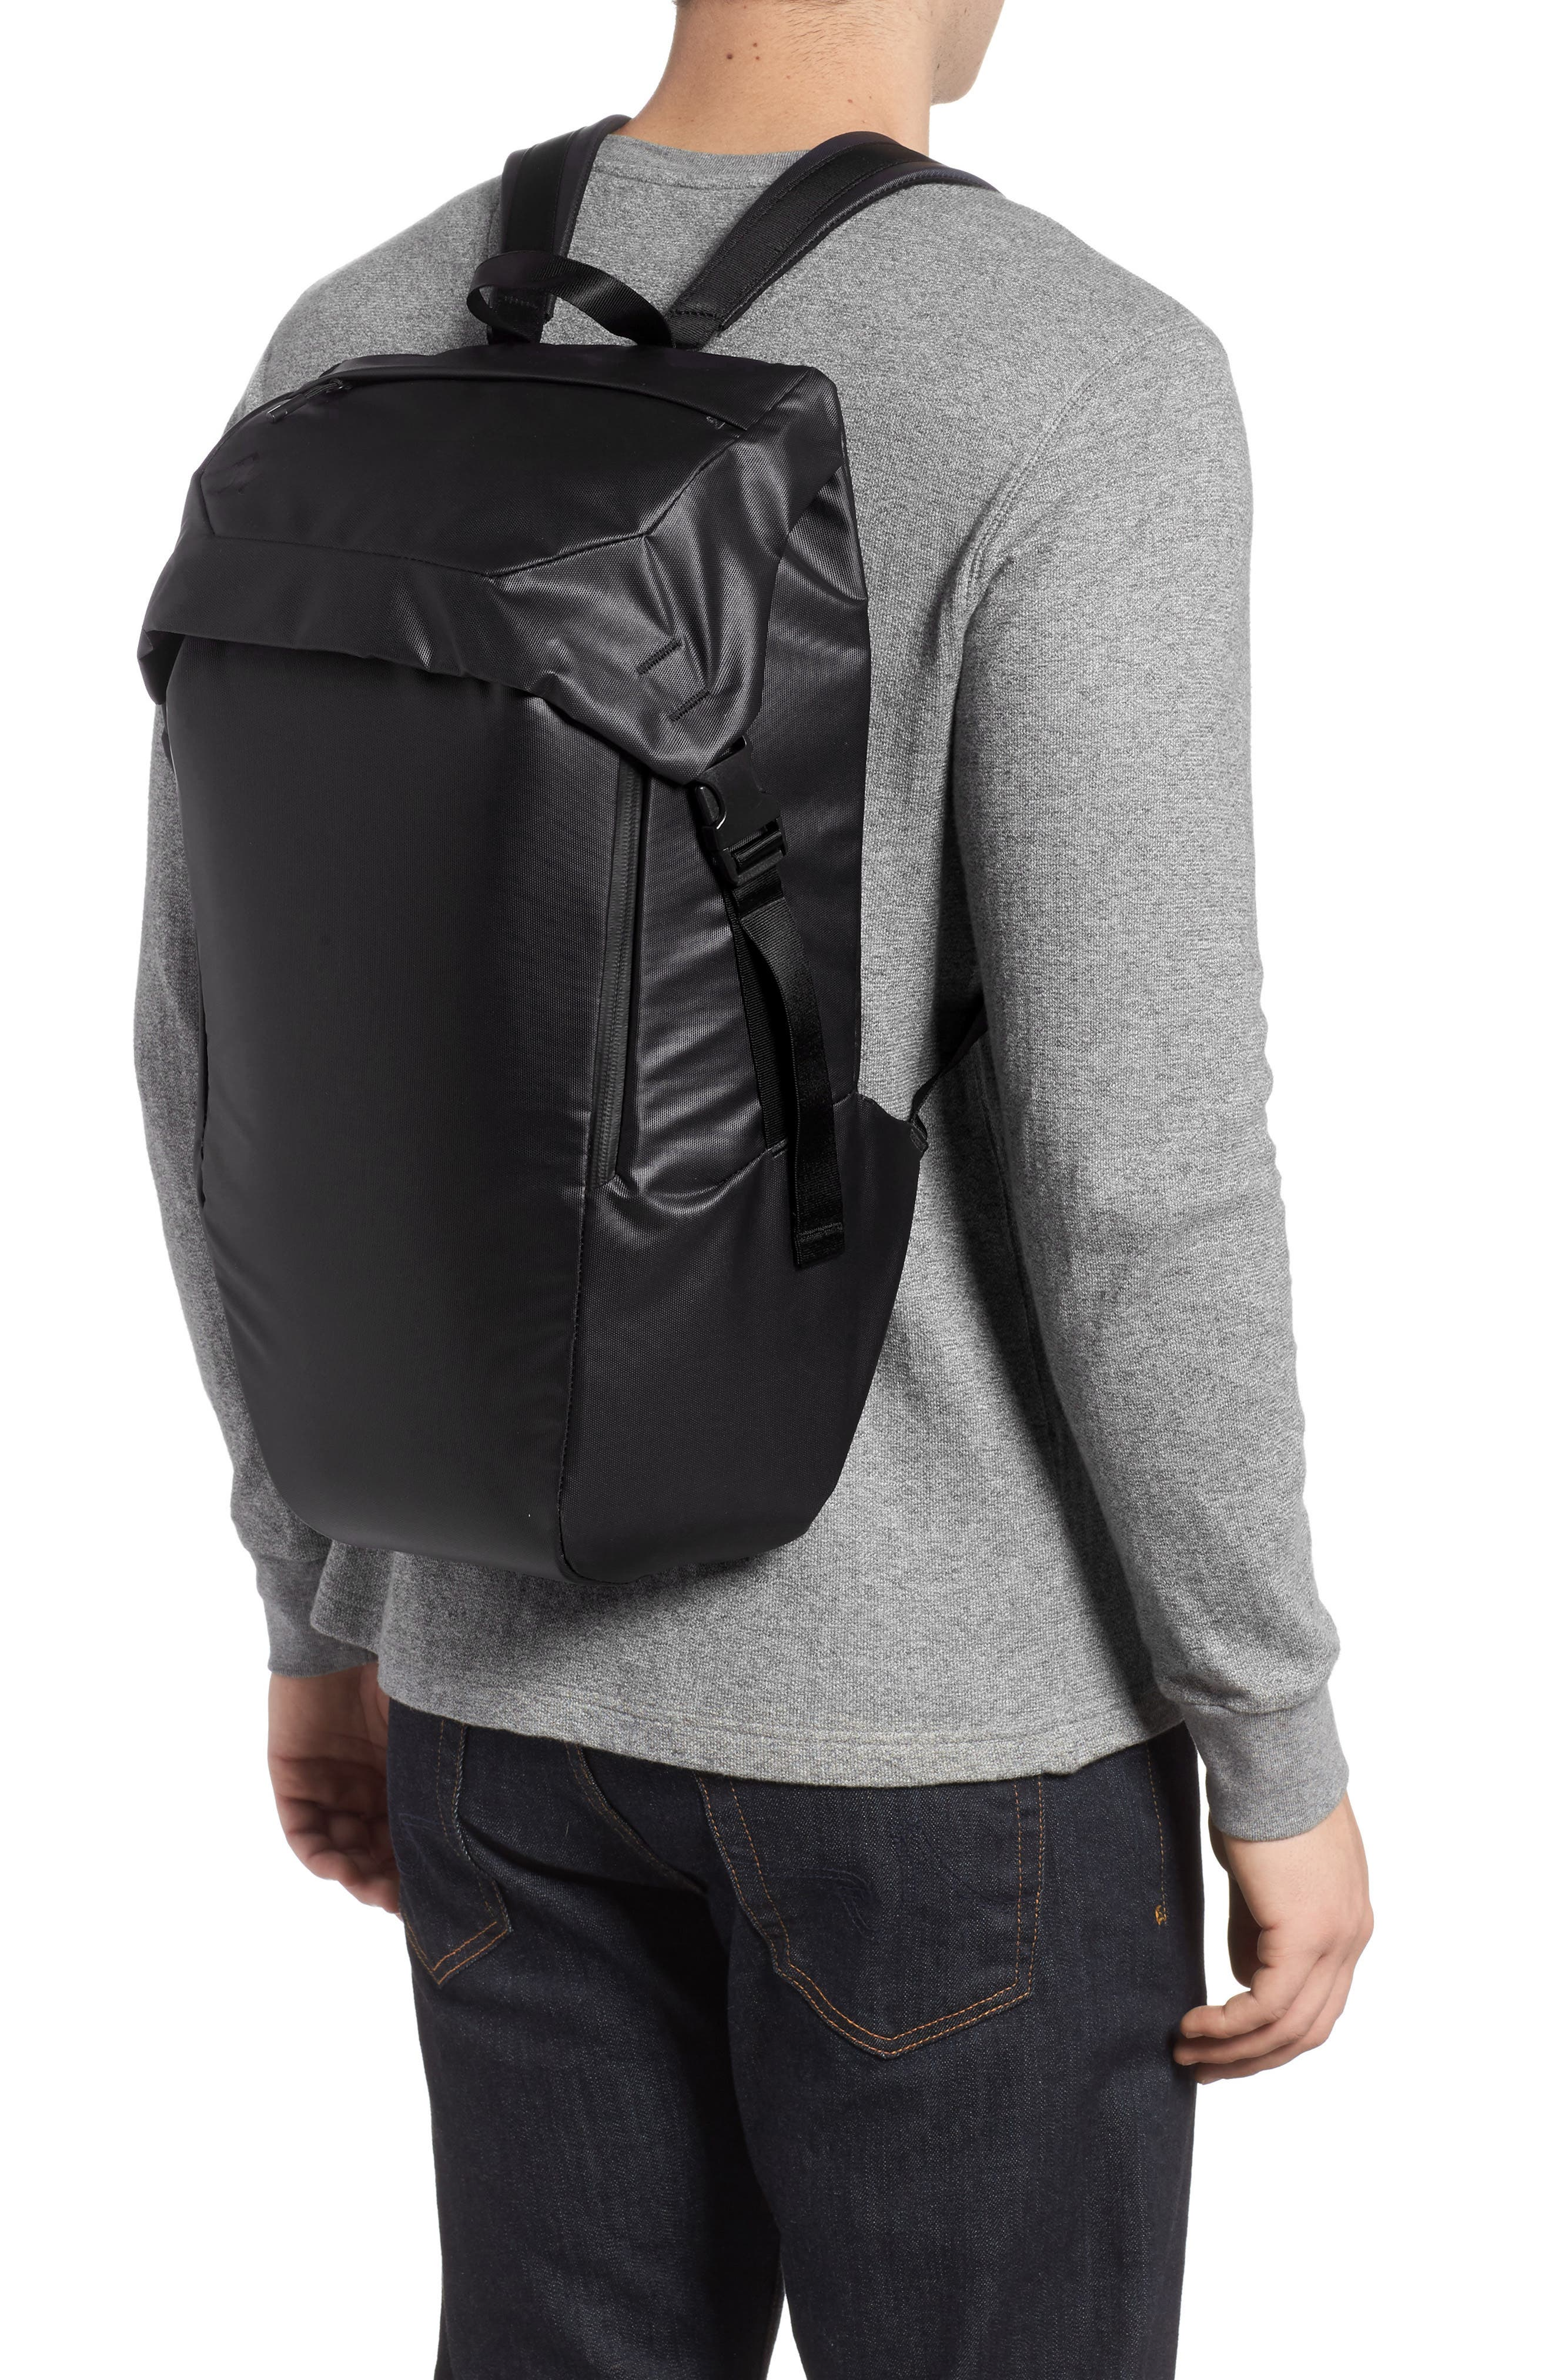 Quick Pack Backpack,                             Alternate thumbnail 3, color,